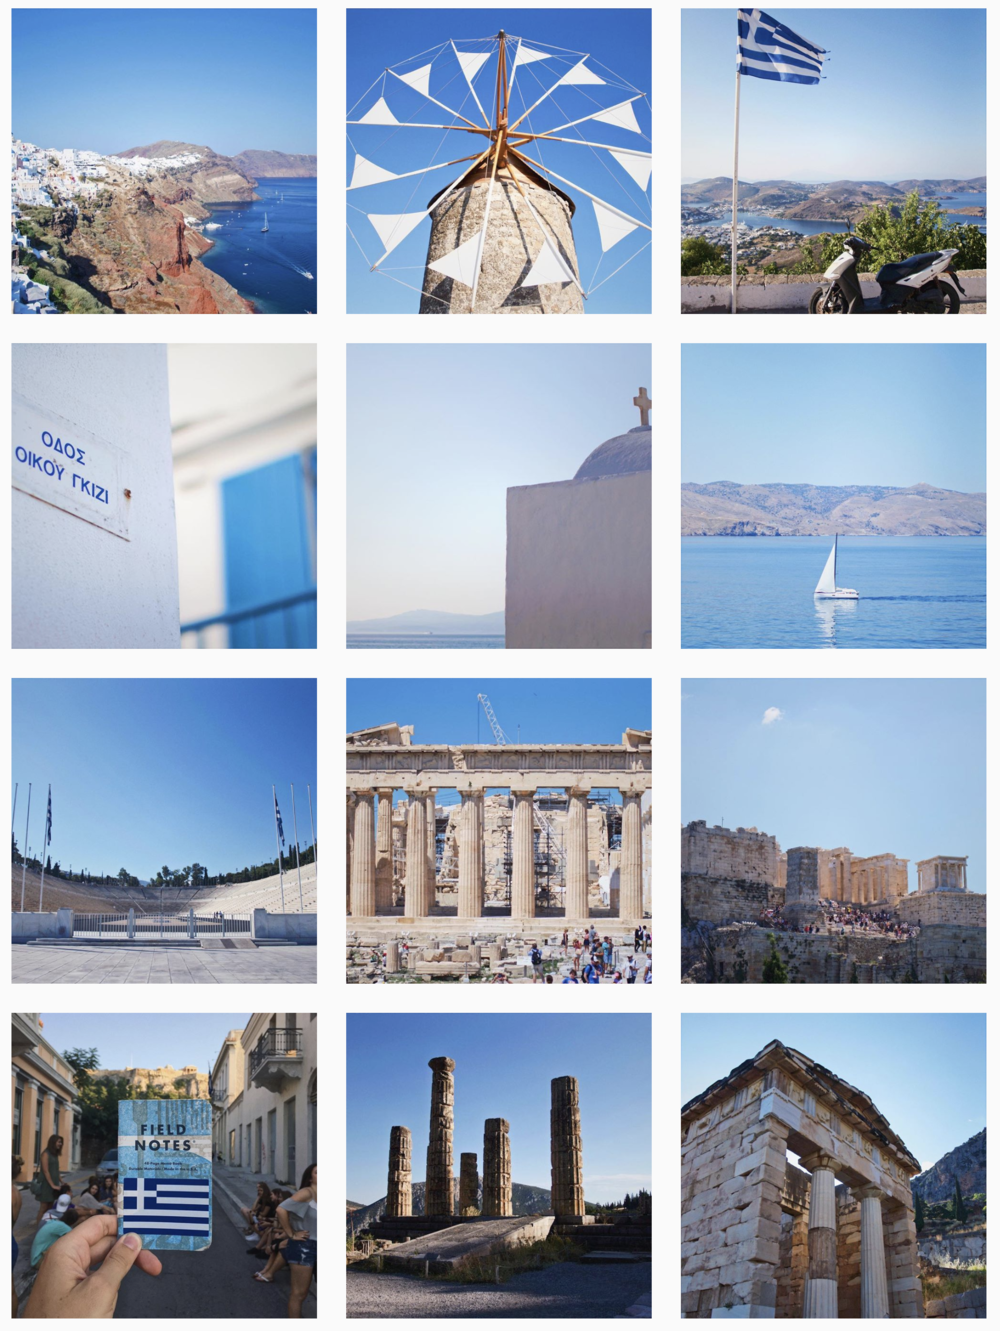 The blues and whites of Greece